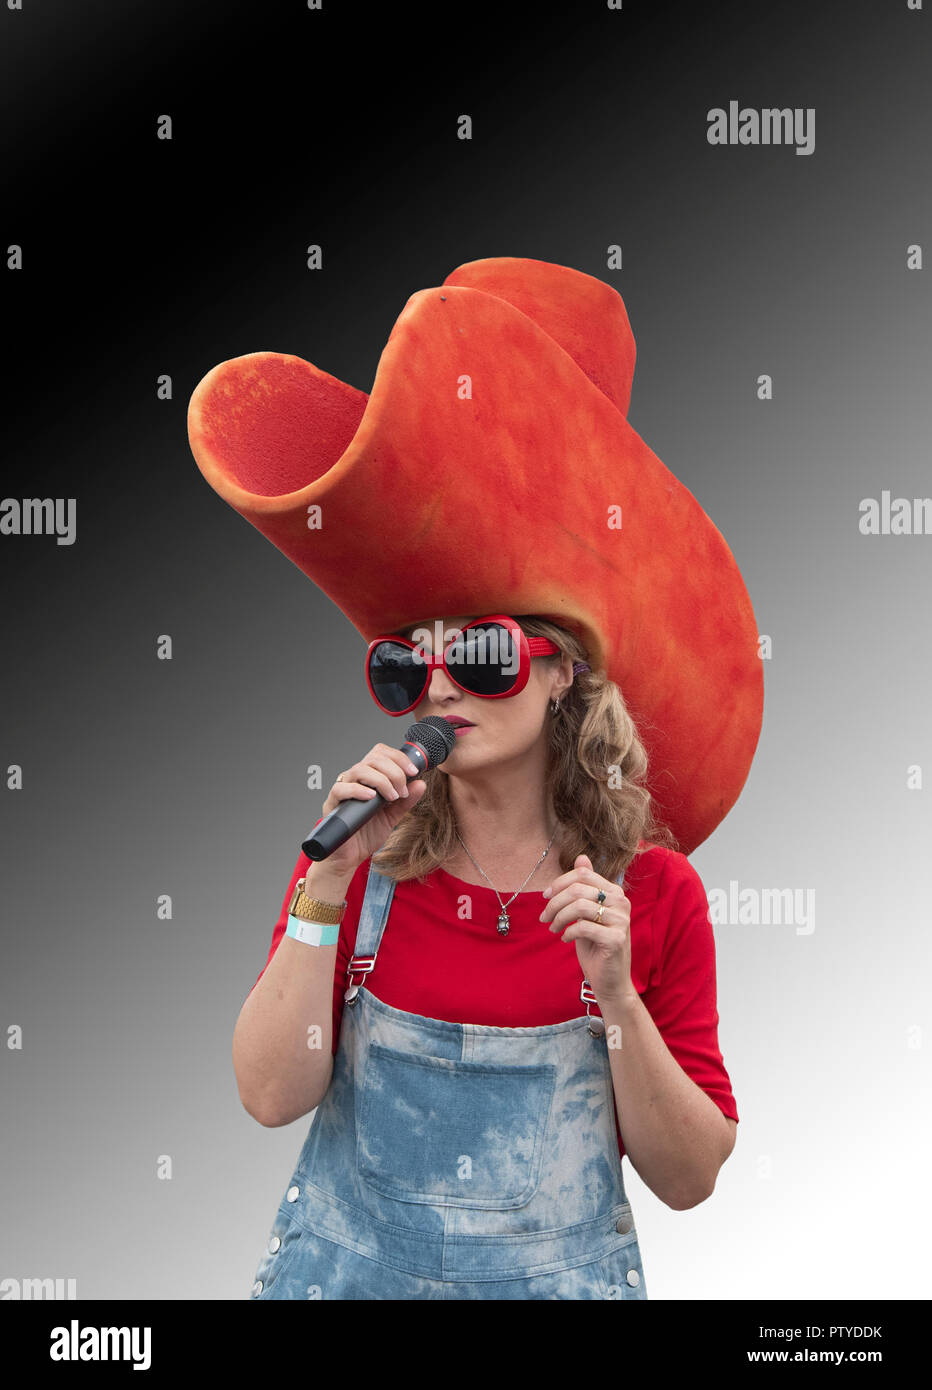 Portrait of a pretty female singer holding a microphone and wearing a giant red hat and huge red sunglasses - Stock Image